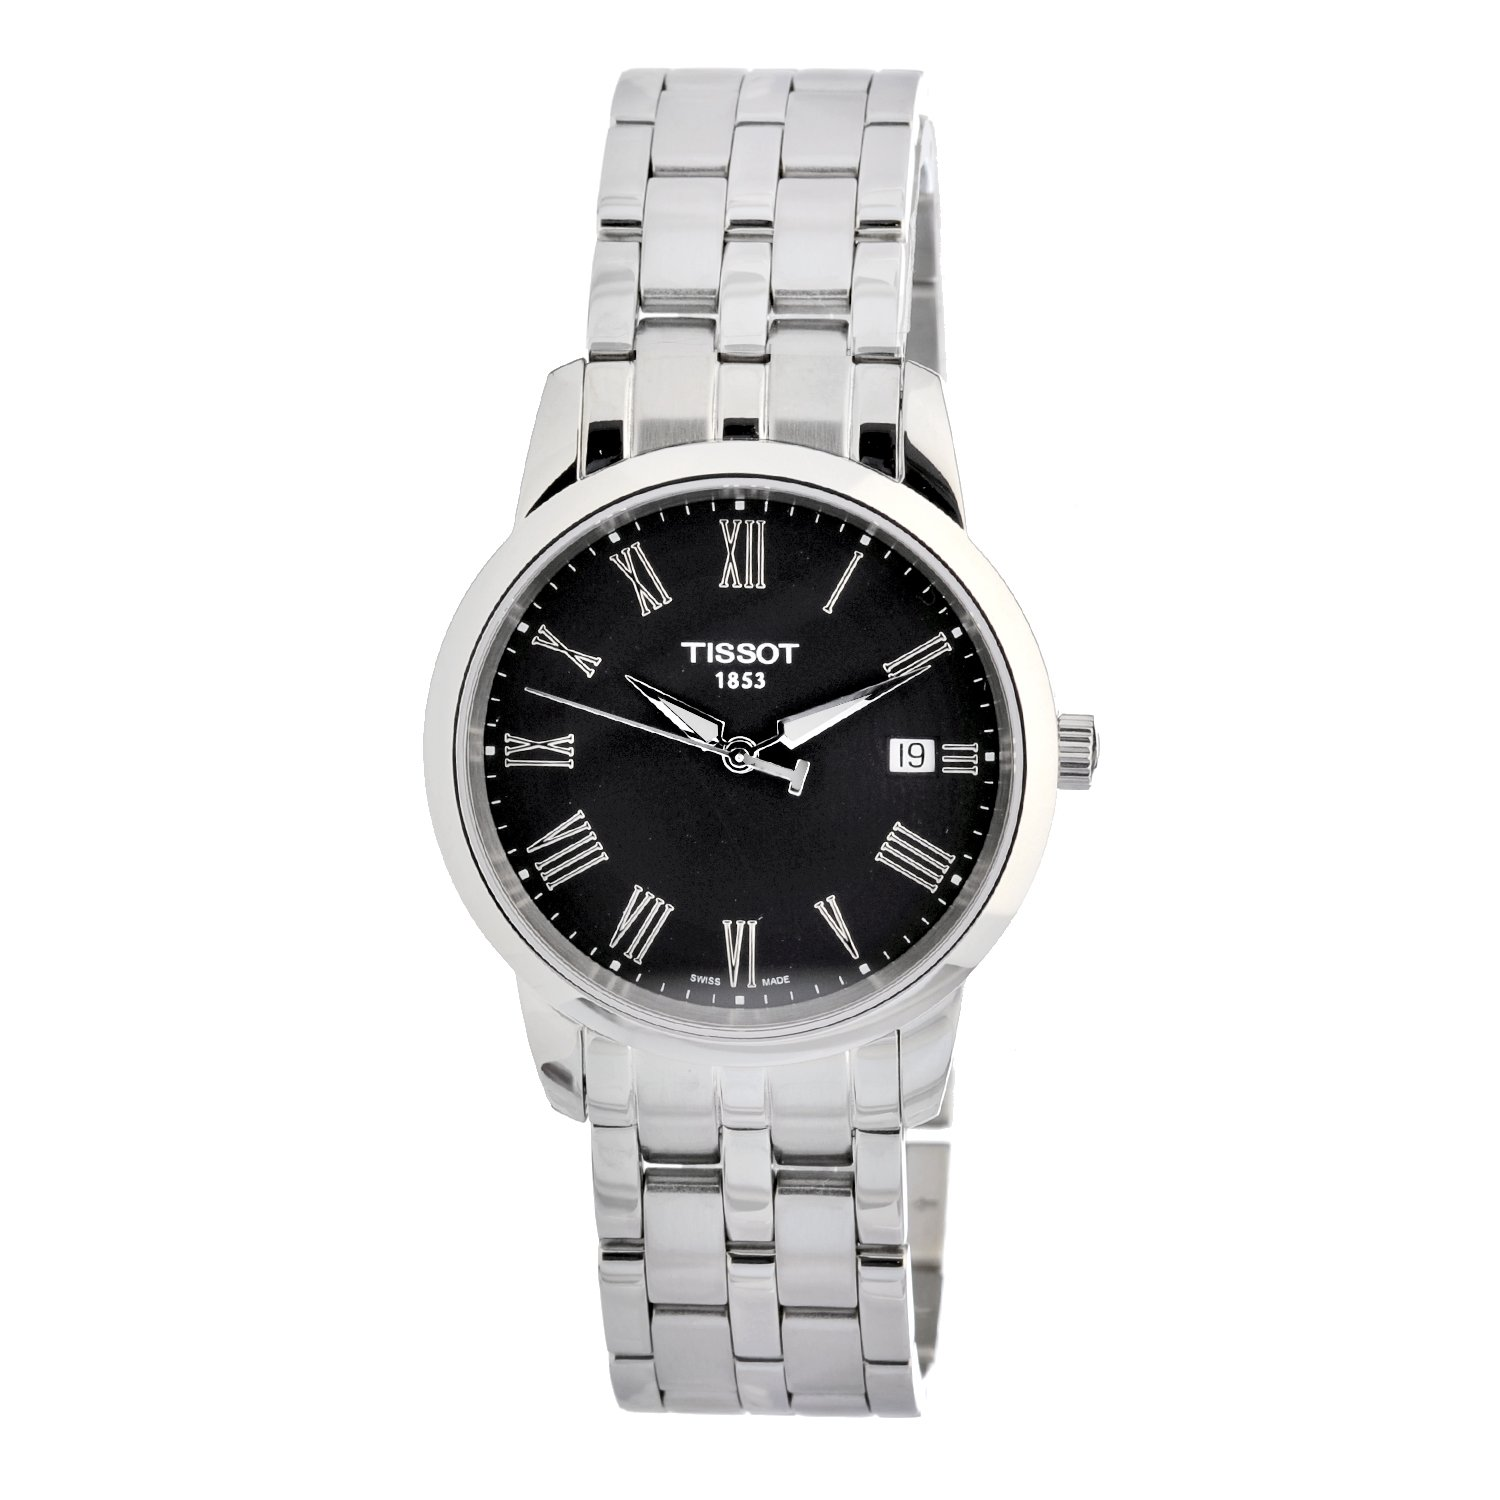 Tissot Men's T0334101105300 Classic Dream Stainless Steel Watch $165